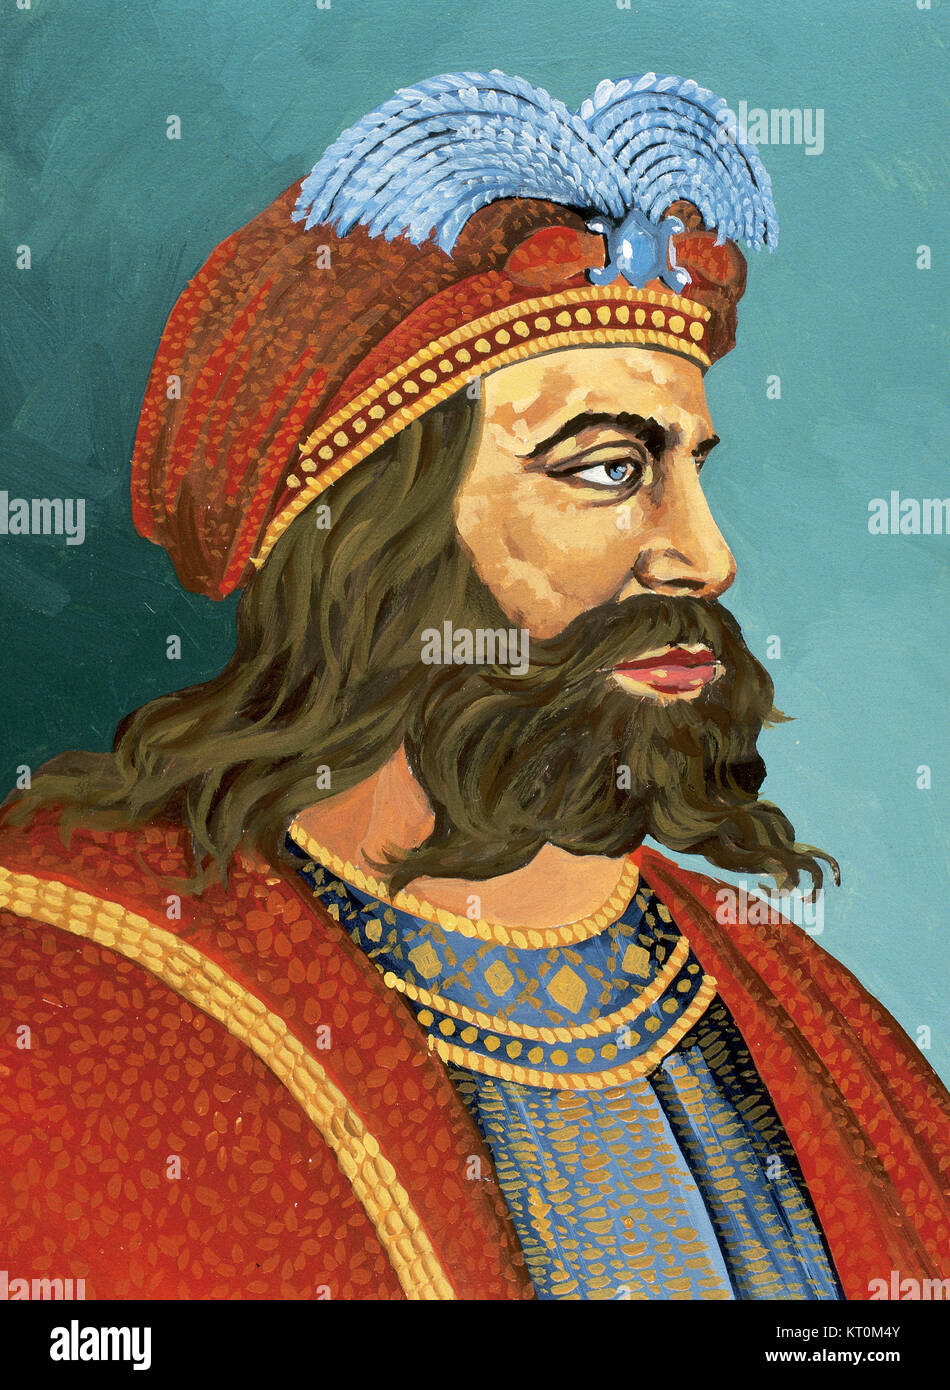 Suintila (588-633/635). Visigothic King of Hispania, Septimania and Galicia from 621 to 631. Portrait. Watercolor. - Stock Image